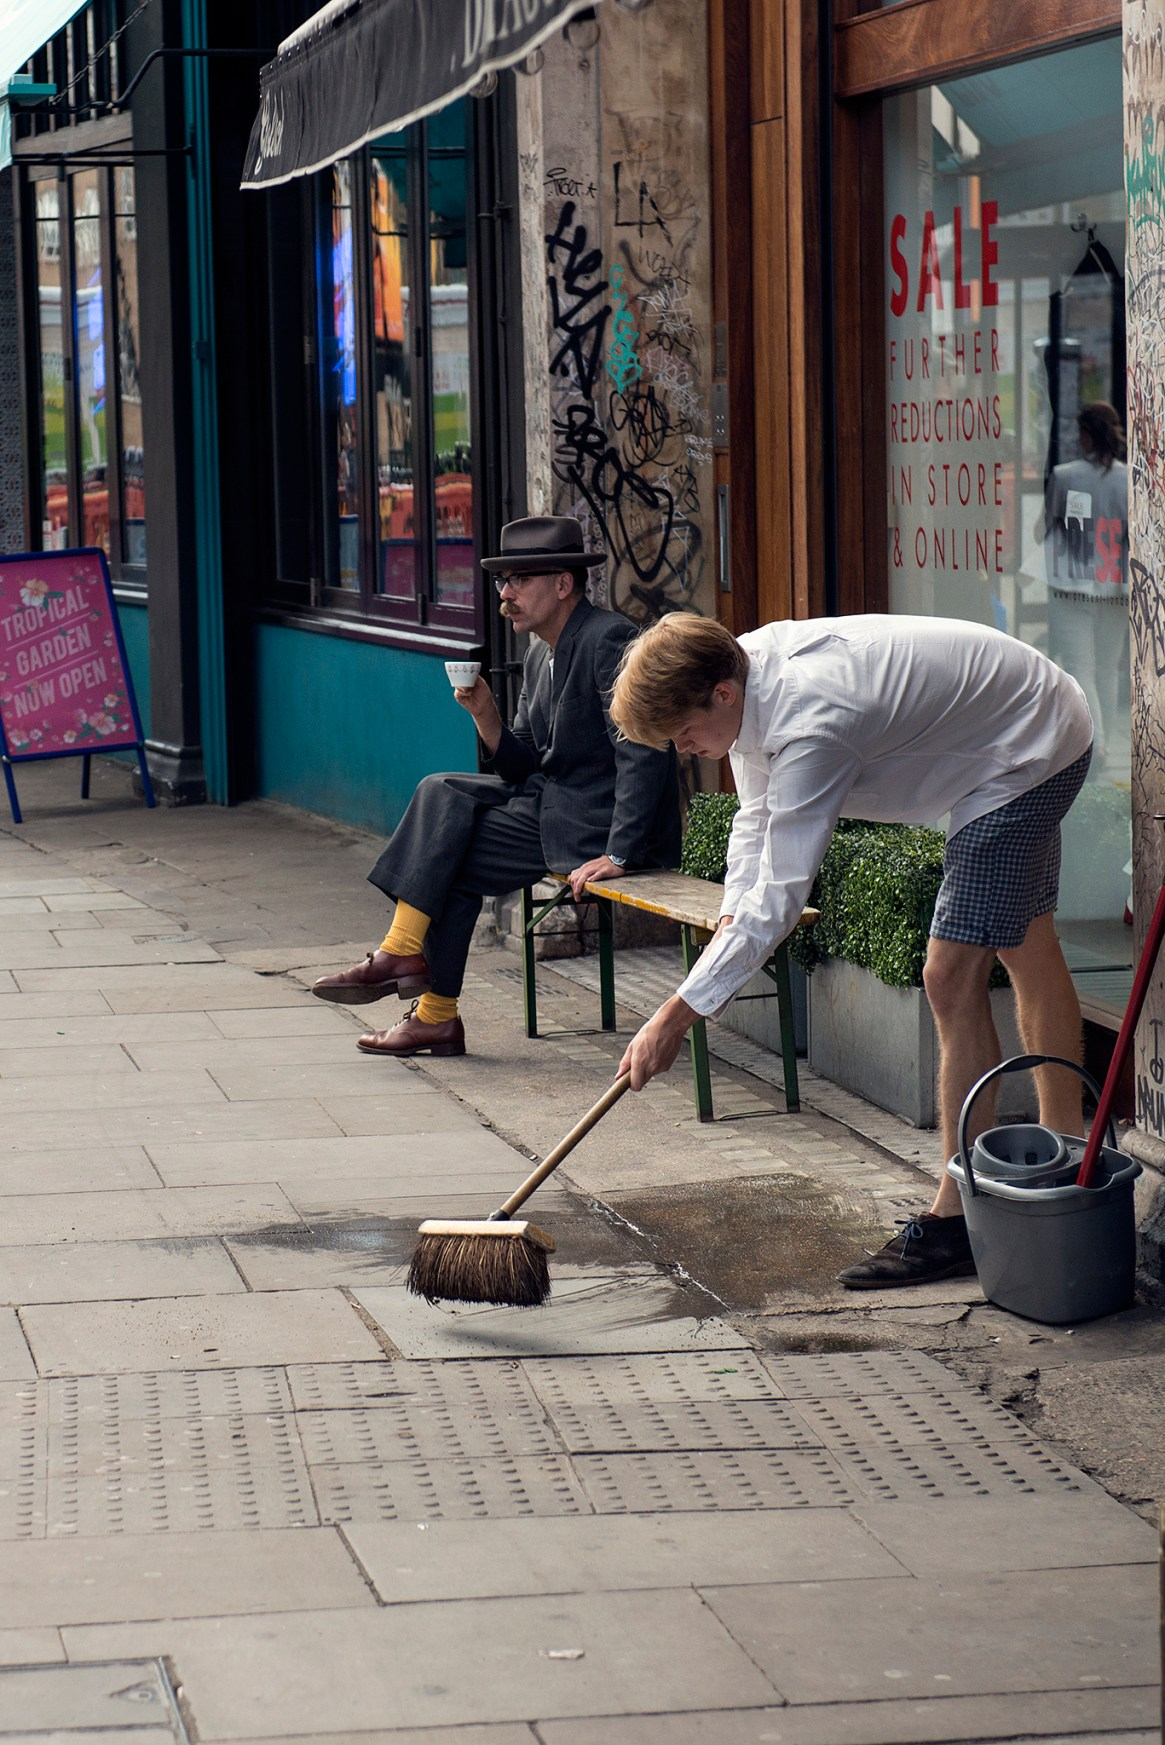 A young man sweeps the pavement in front of his shop, whilst another sits and sips on a cup of coffee